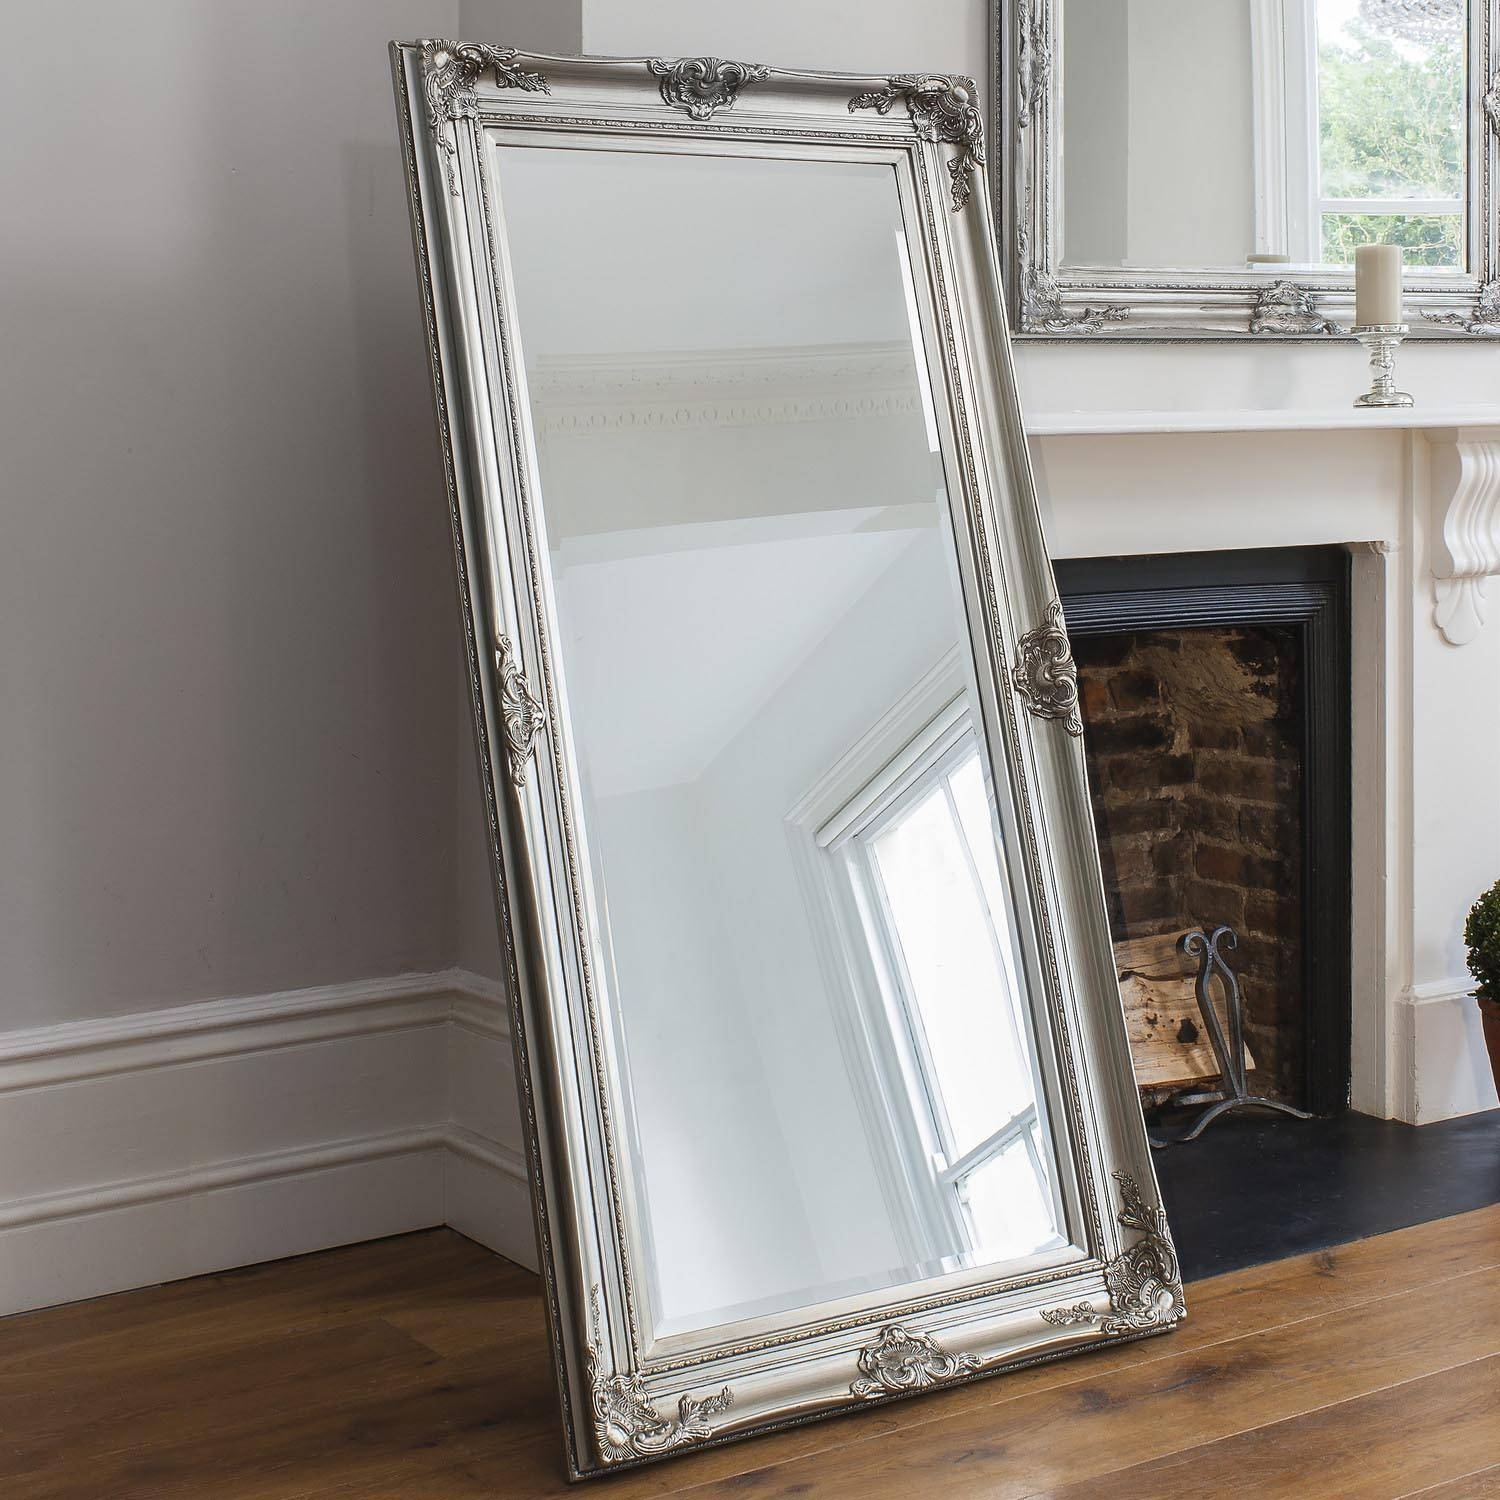 Cheap Extra Large Floor Mirrors | Floor Decoration within Cheap Mirrors (Image 6 of 15)